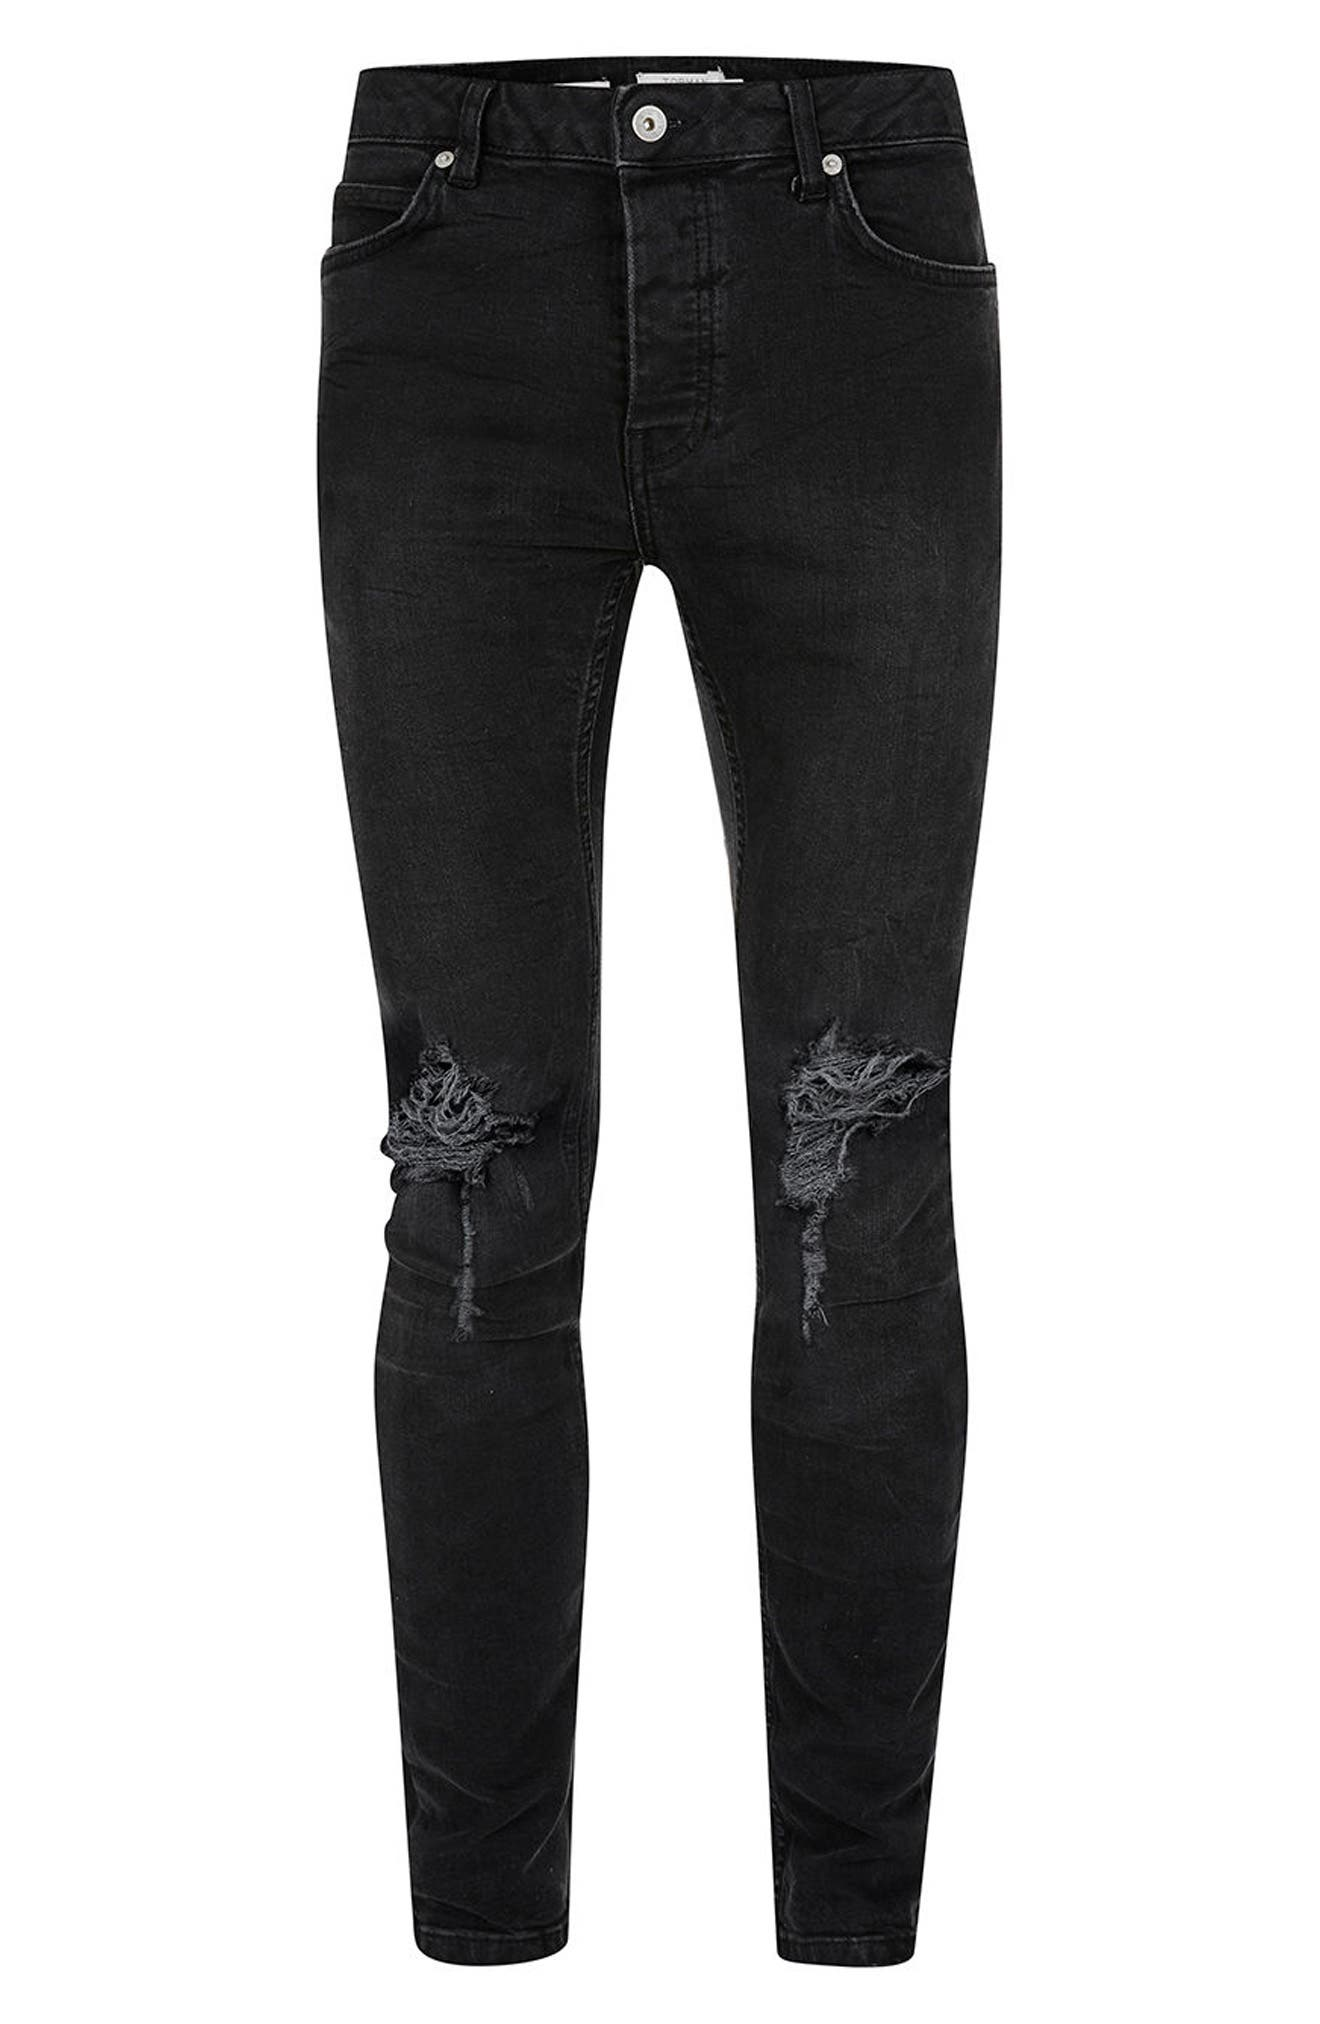 Ripped Skinny Fit Jeans,                             Alternate thumbnail 4, color,                             001